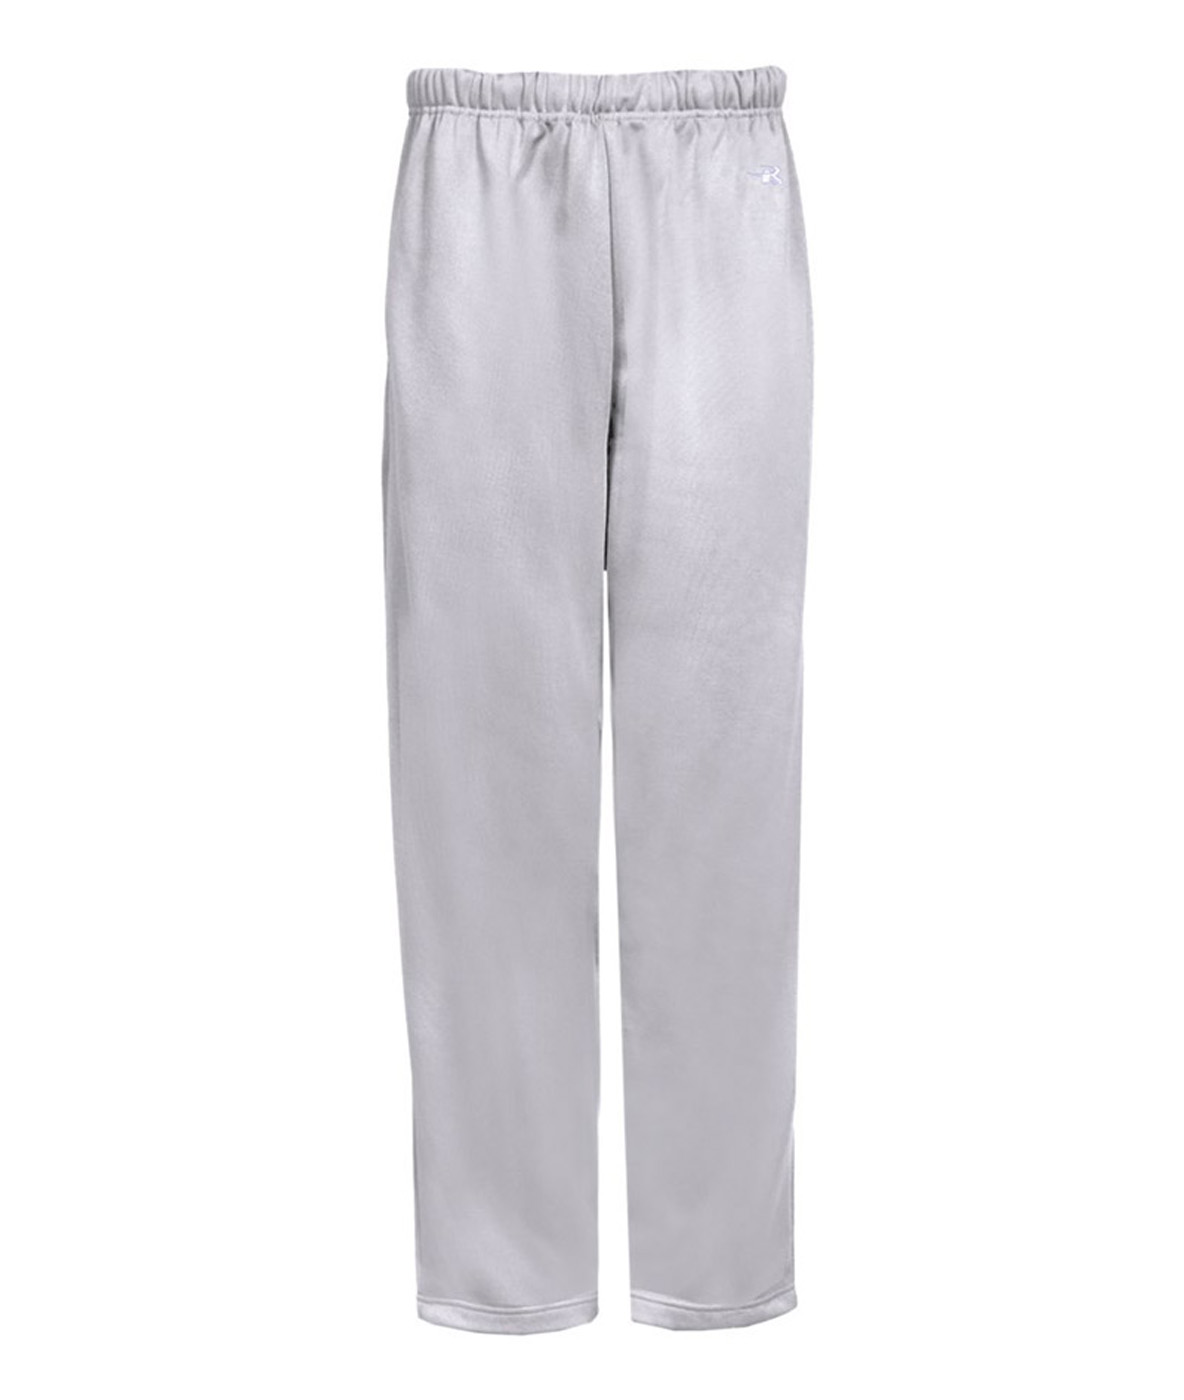 Badger 2478 Youth Moisture-Management Sweatpant, Silver, Large by Badger